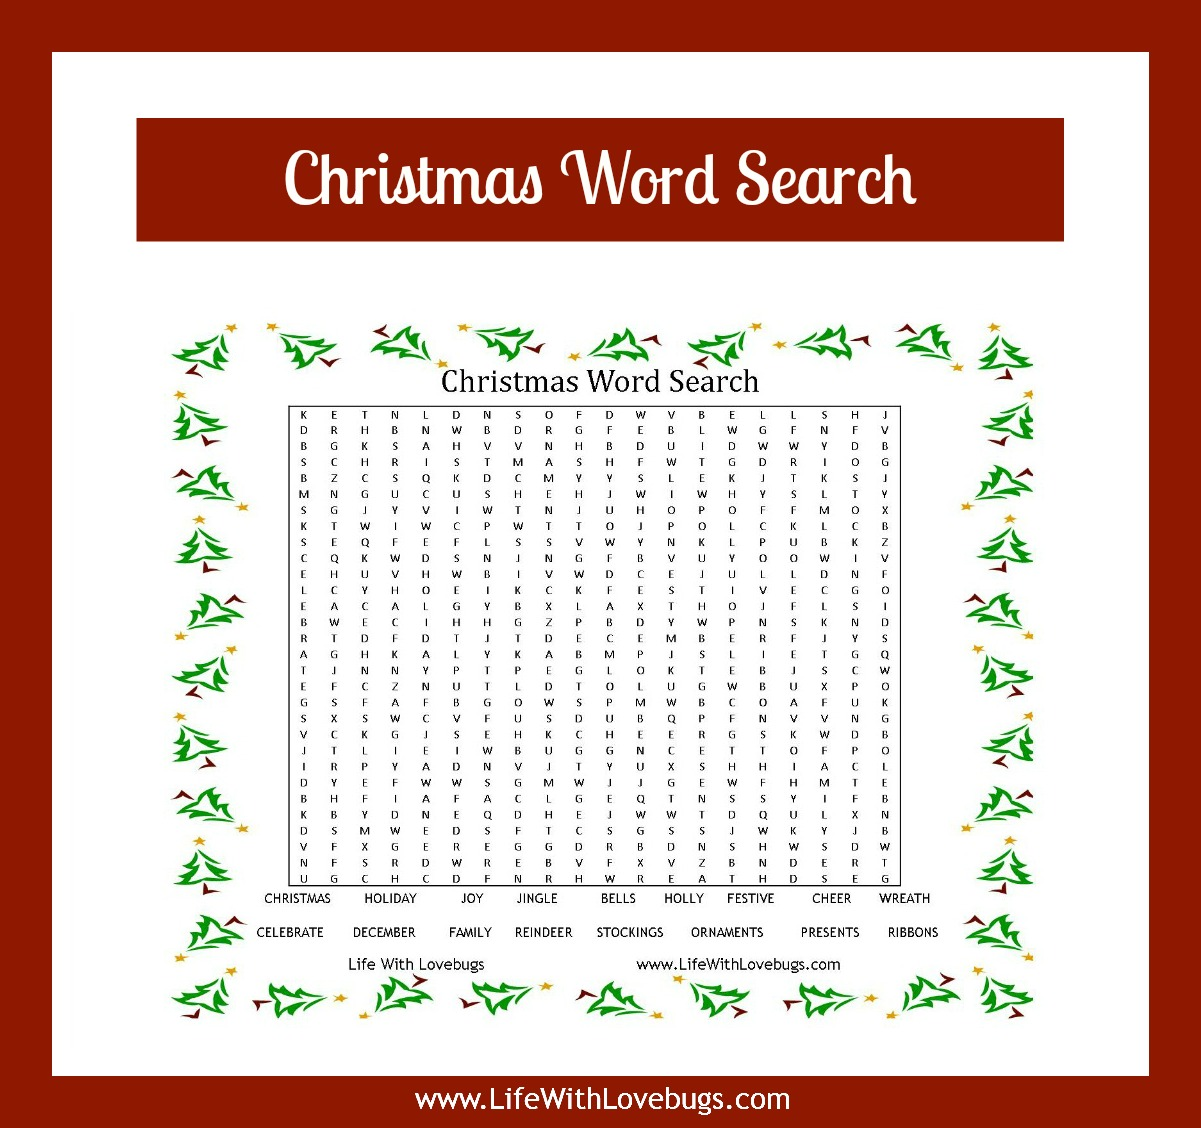 Workbooks word search worksheets for adults : Christmas Word Search {Printable} - Life With Lovebugs